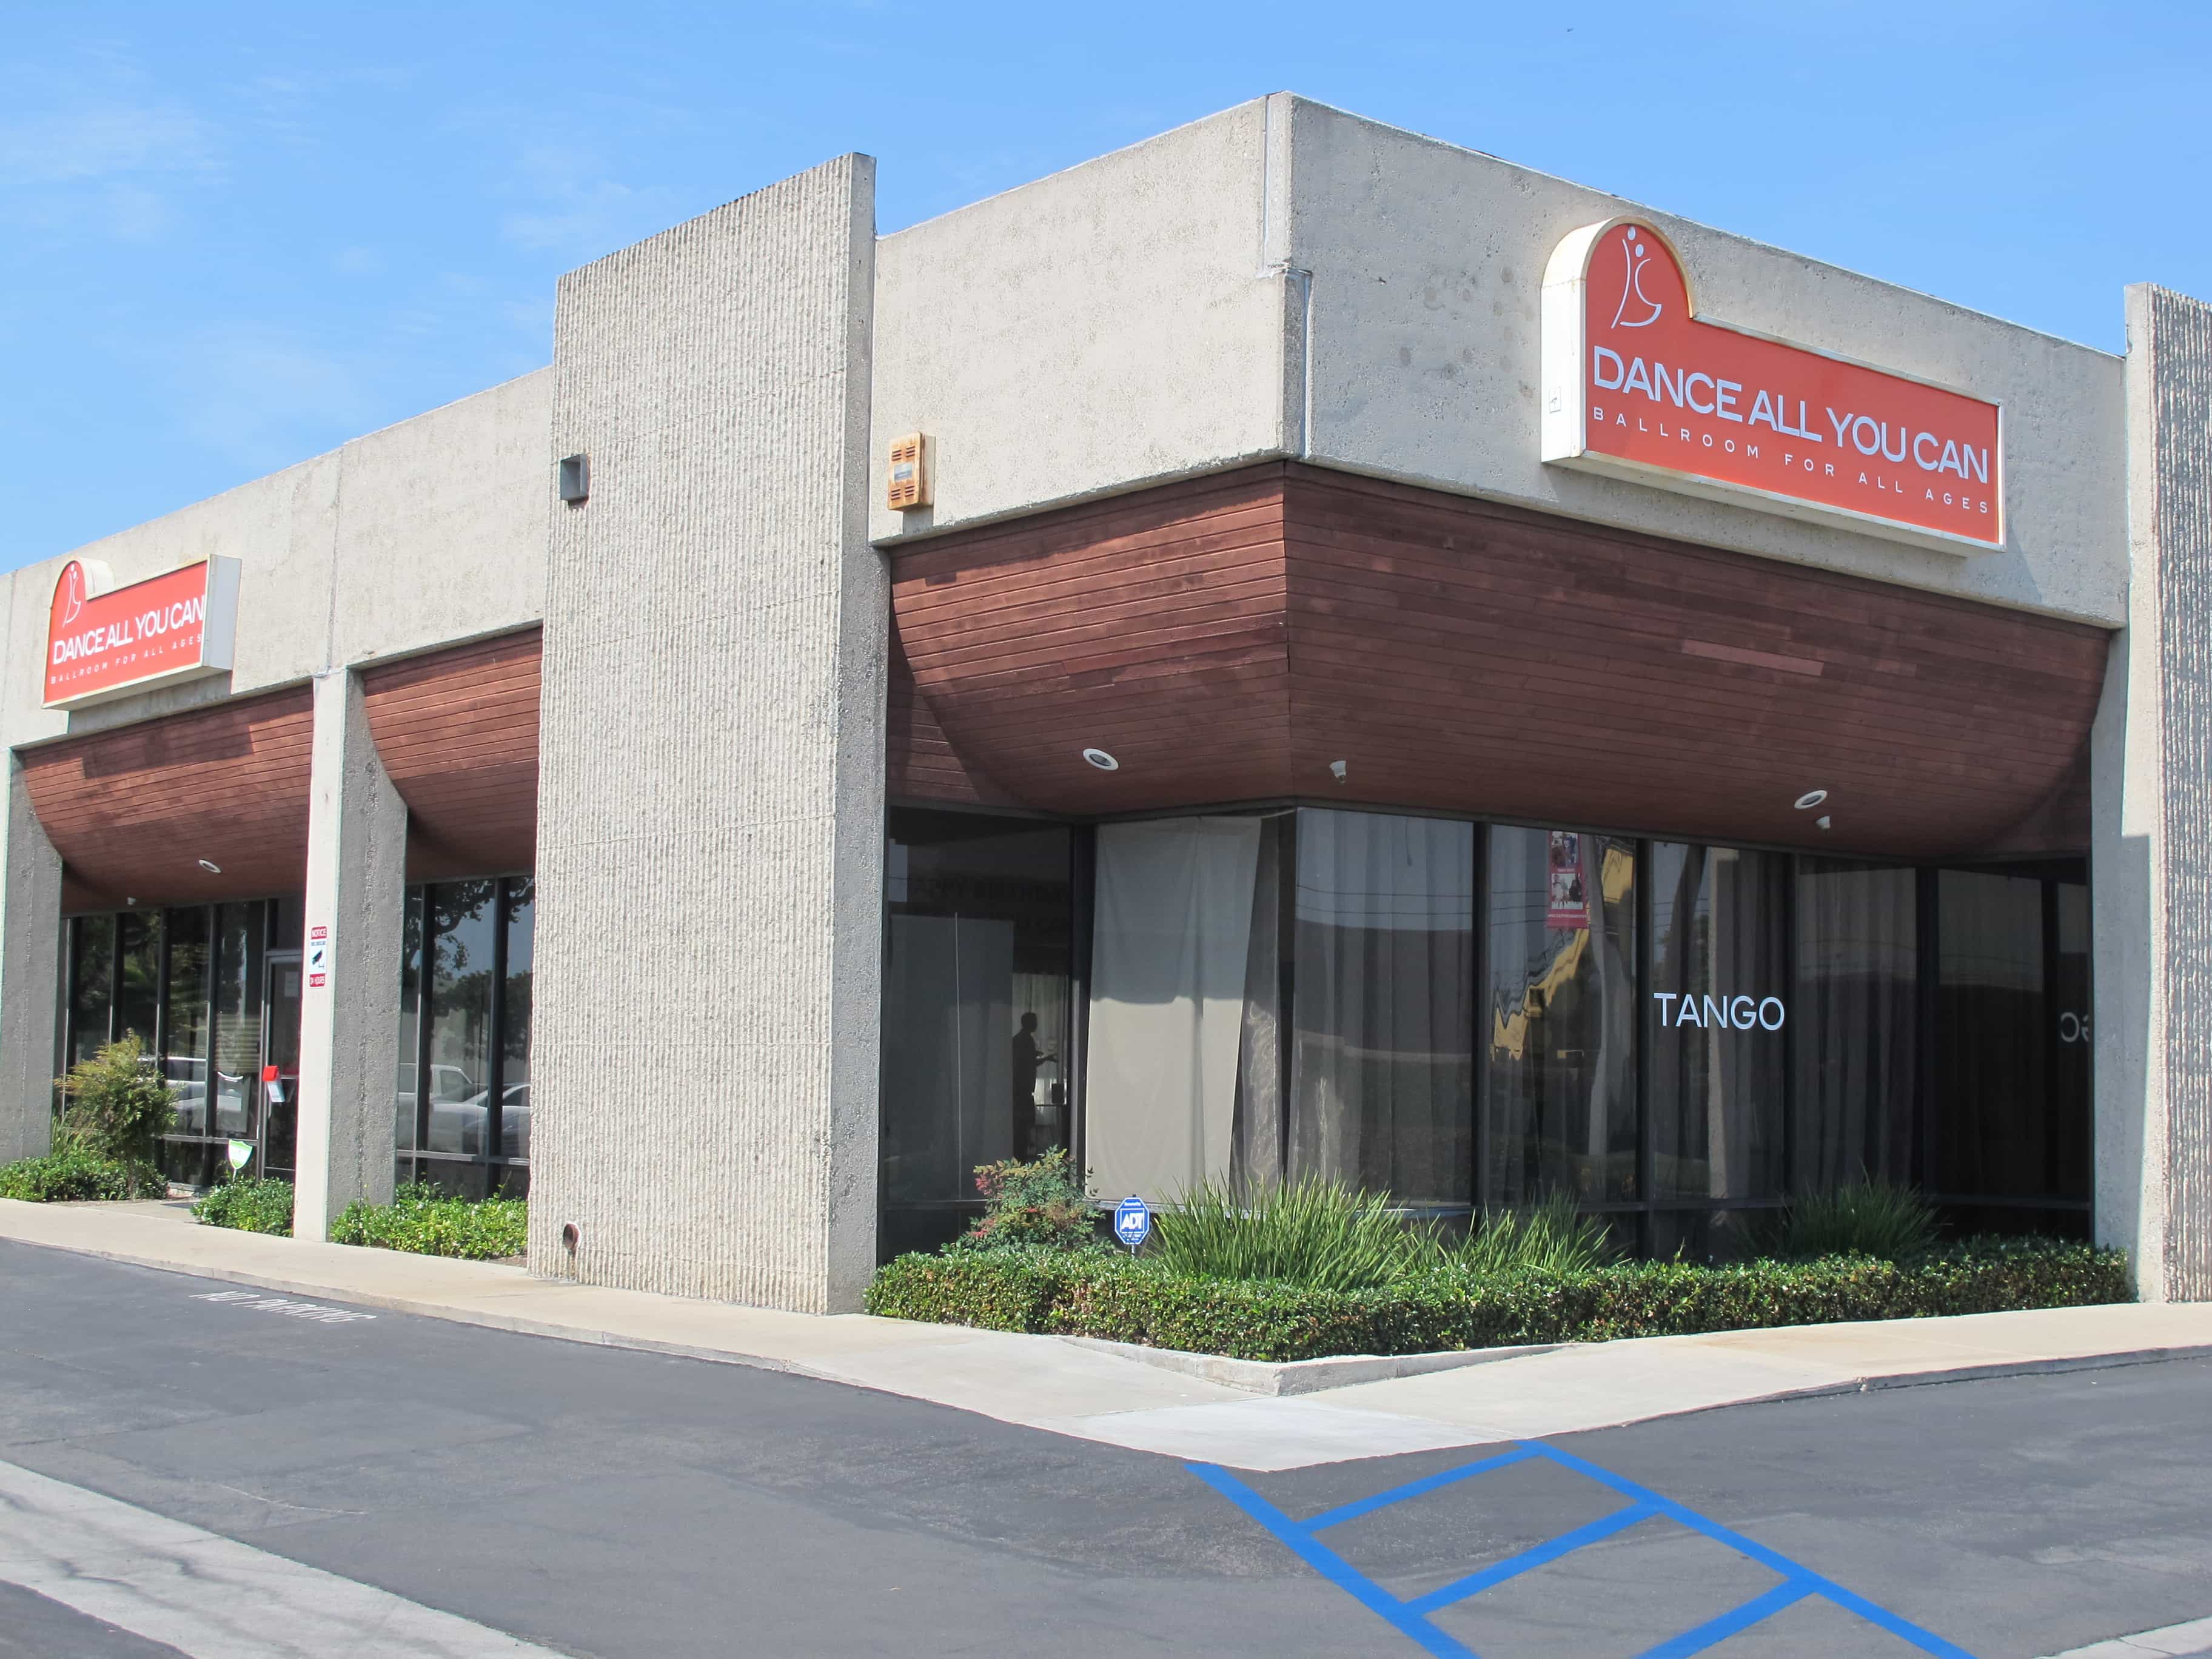 picture of dance all you can studio exterior